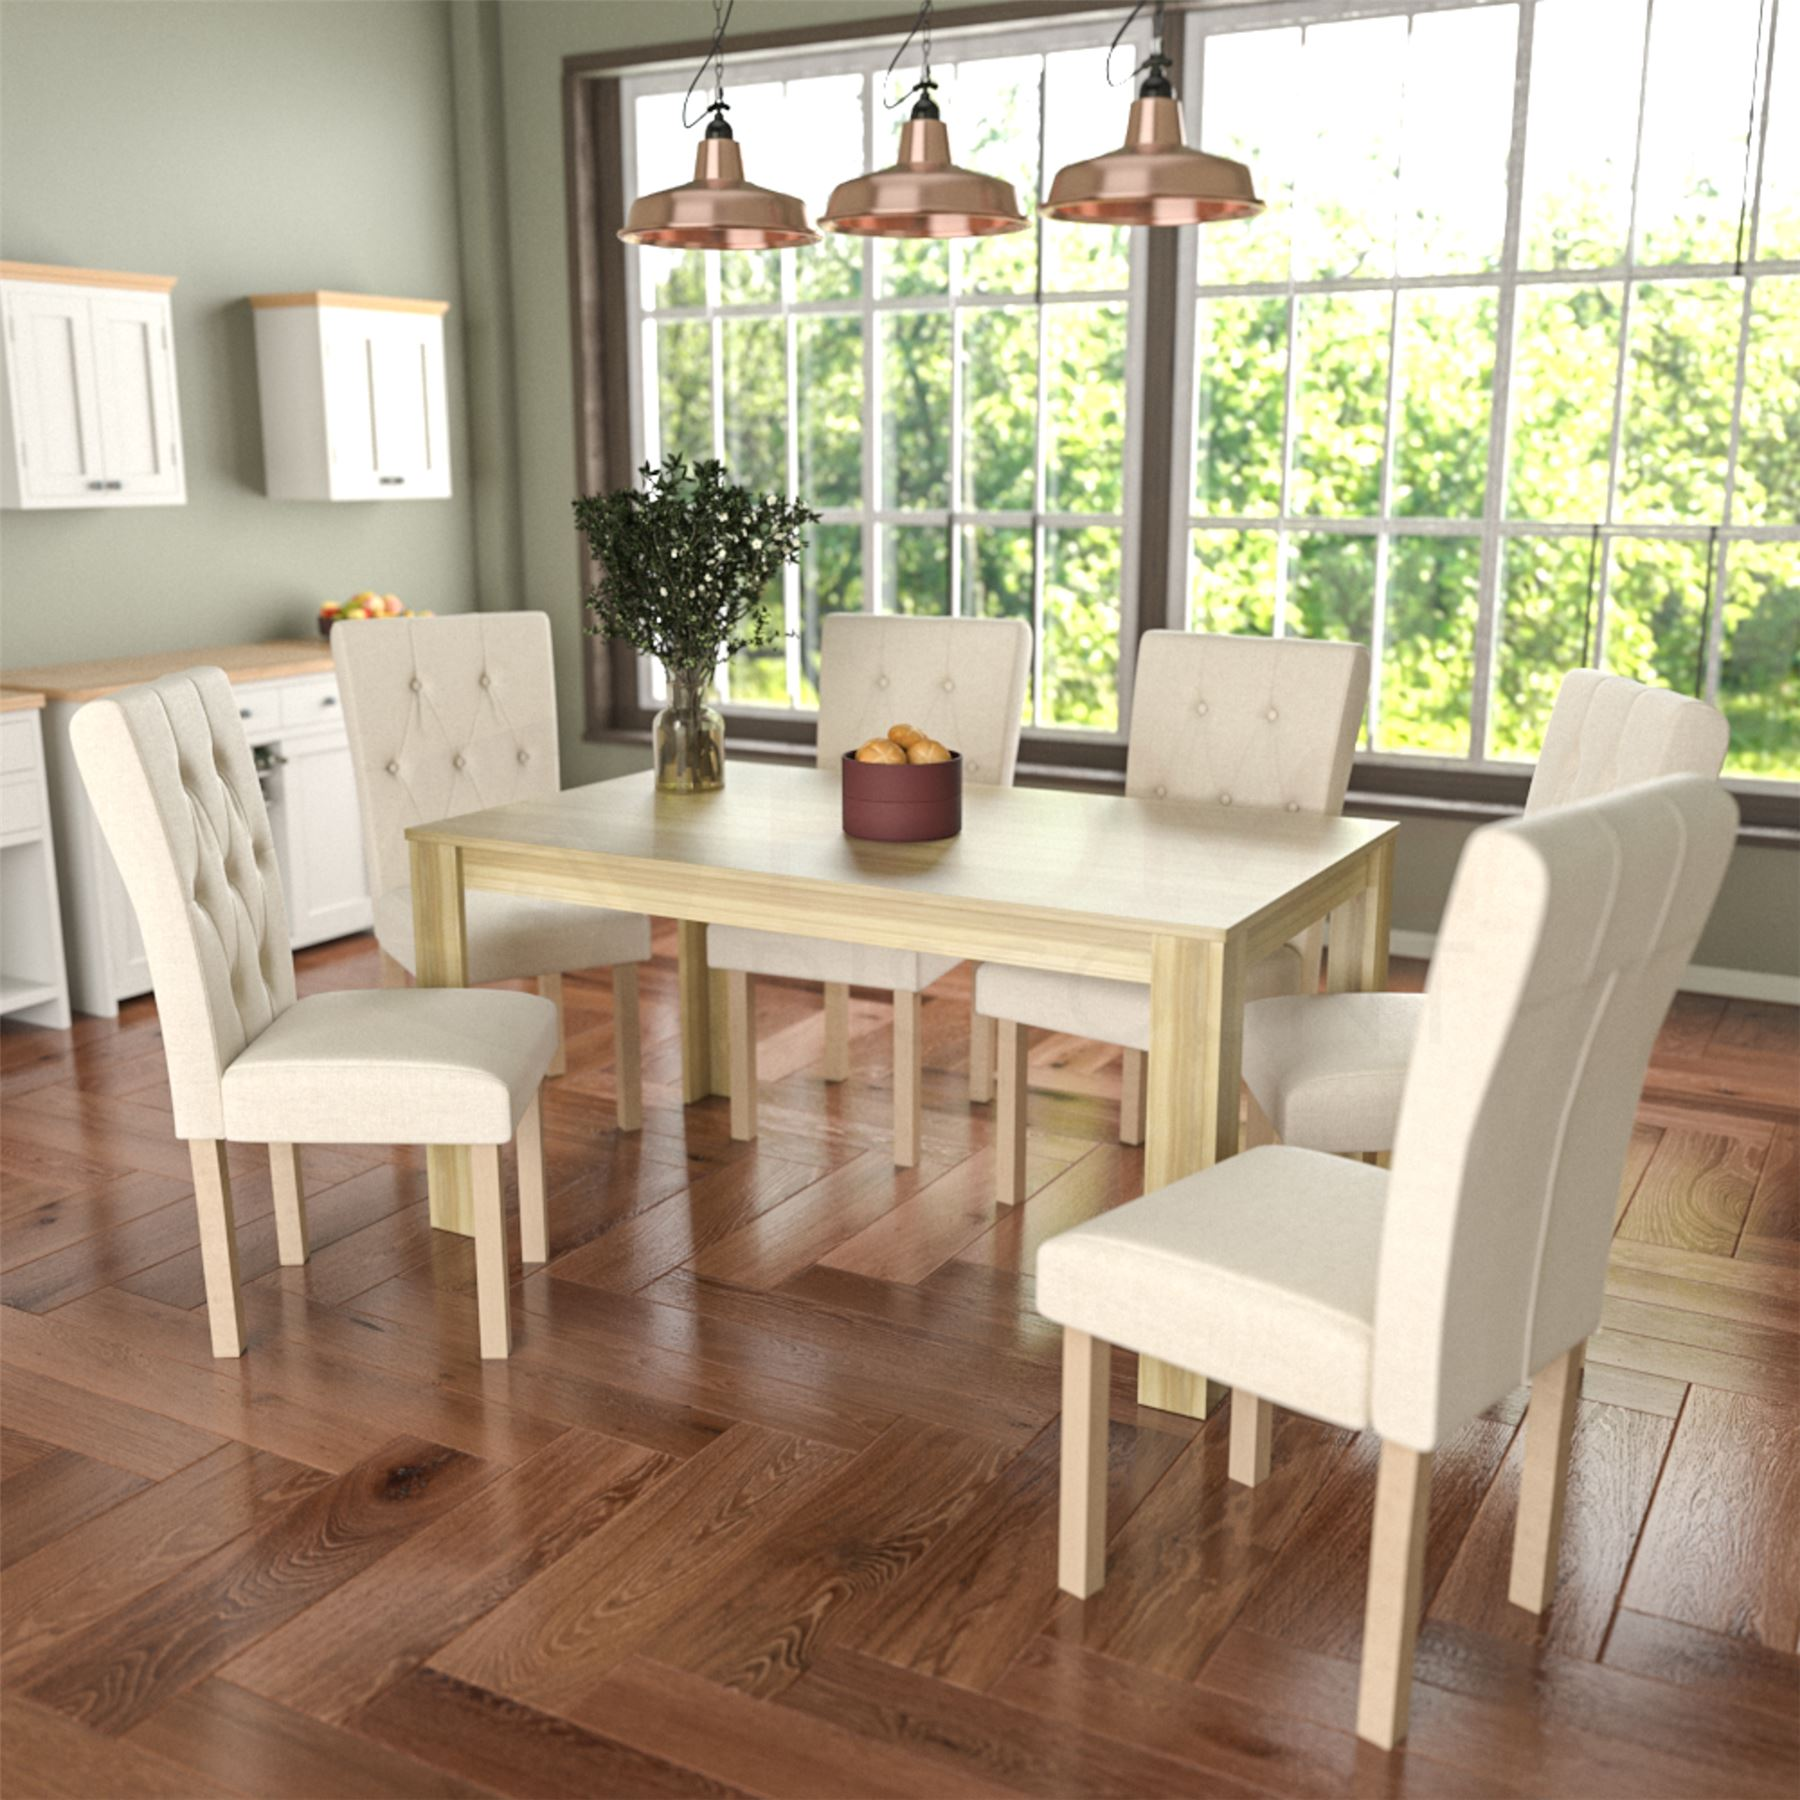 Dining Room Chair Fabric Details About Dining Table 6 Chairs Fabric Seat Kitchen Dining Room Furniture Set Cream Oak